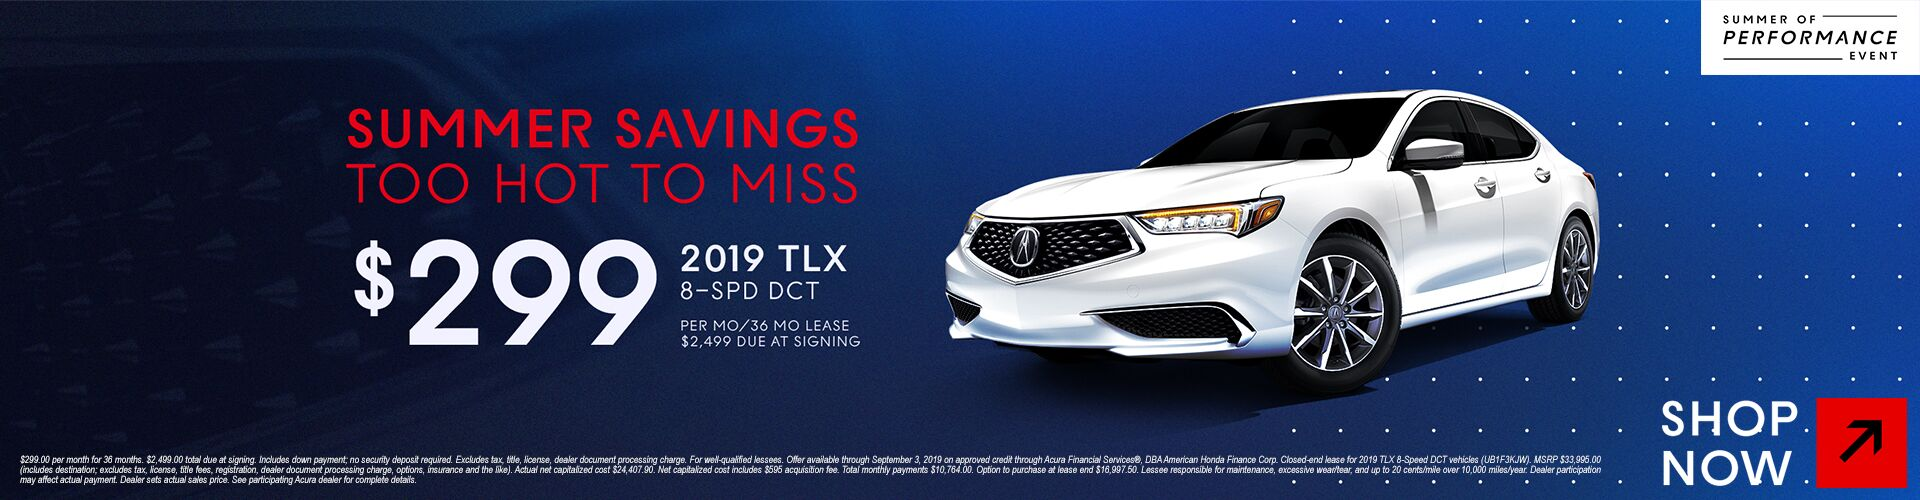 _1920x500_2019 TLX_CA_19125_Acura_LaborDay_CTROT01